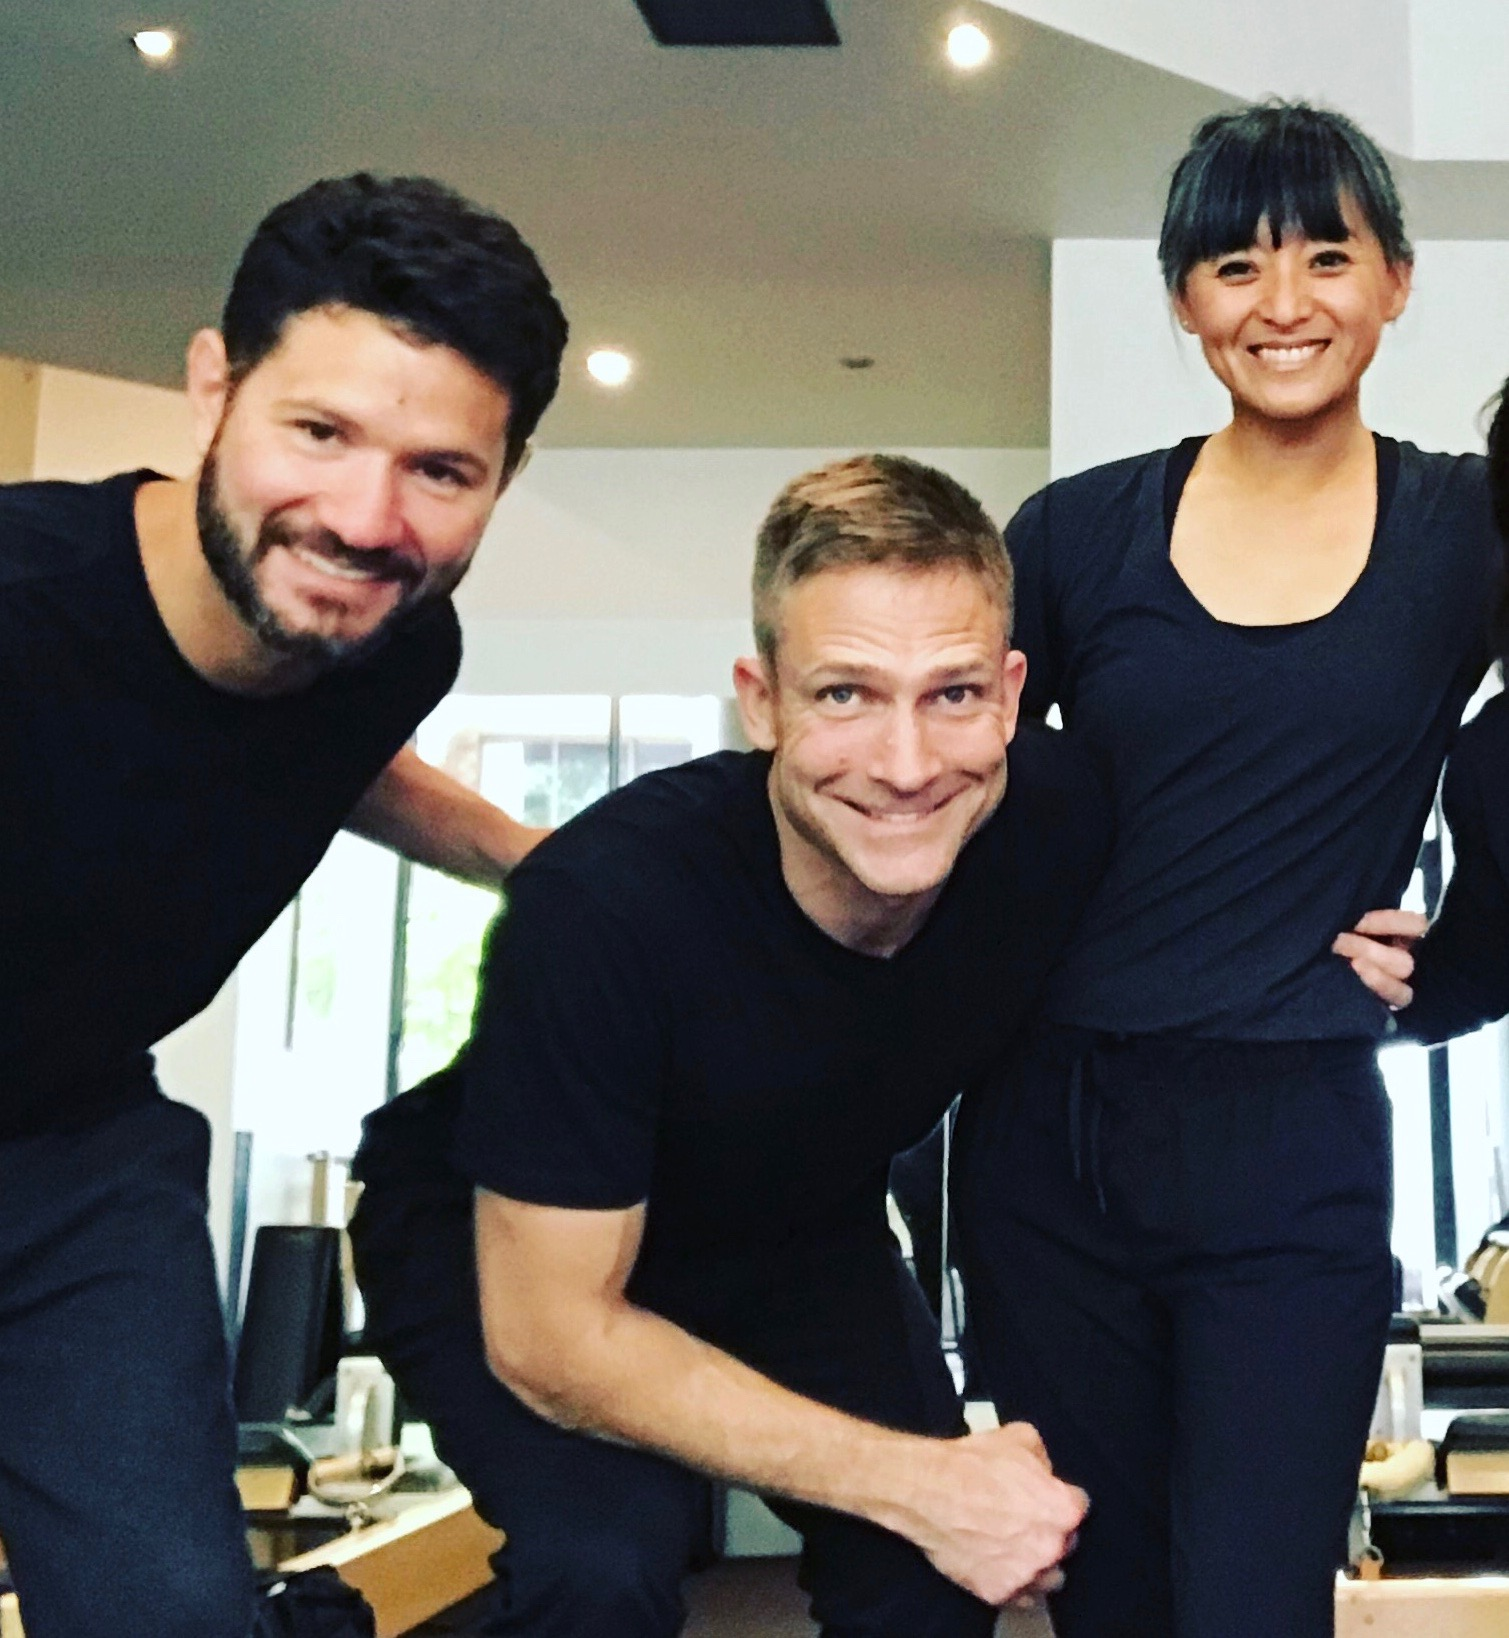 Thank you for choosing to train with True Pilates Sydney Studio. - We look forward to seeing you in the studio.We will be in touch shortly!In Strength and Spirit,True Pilates Sydney Studio Team